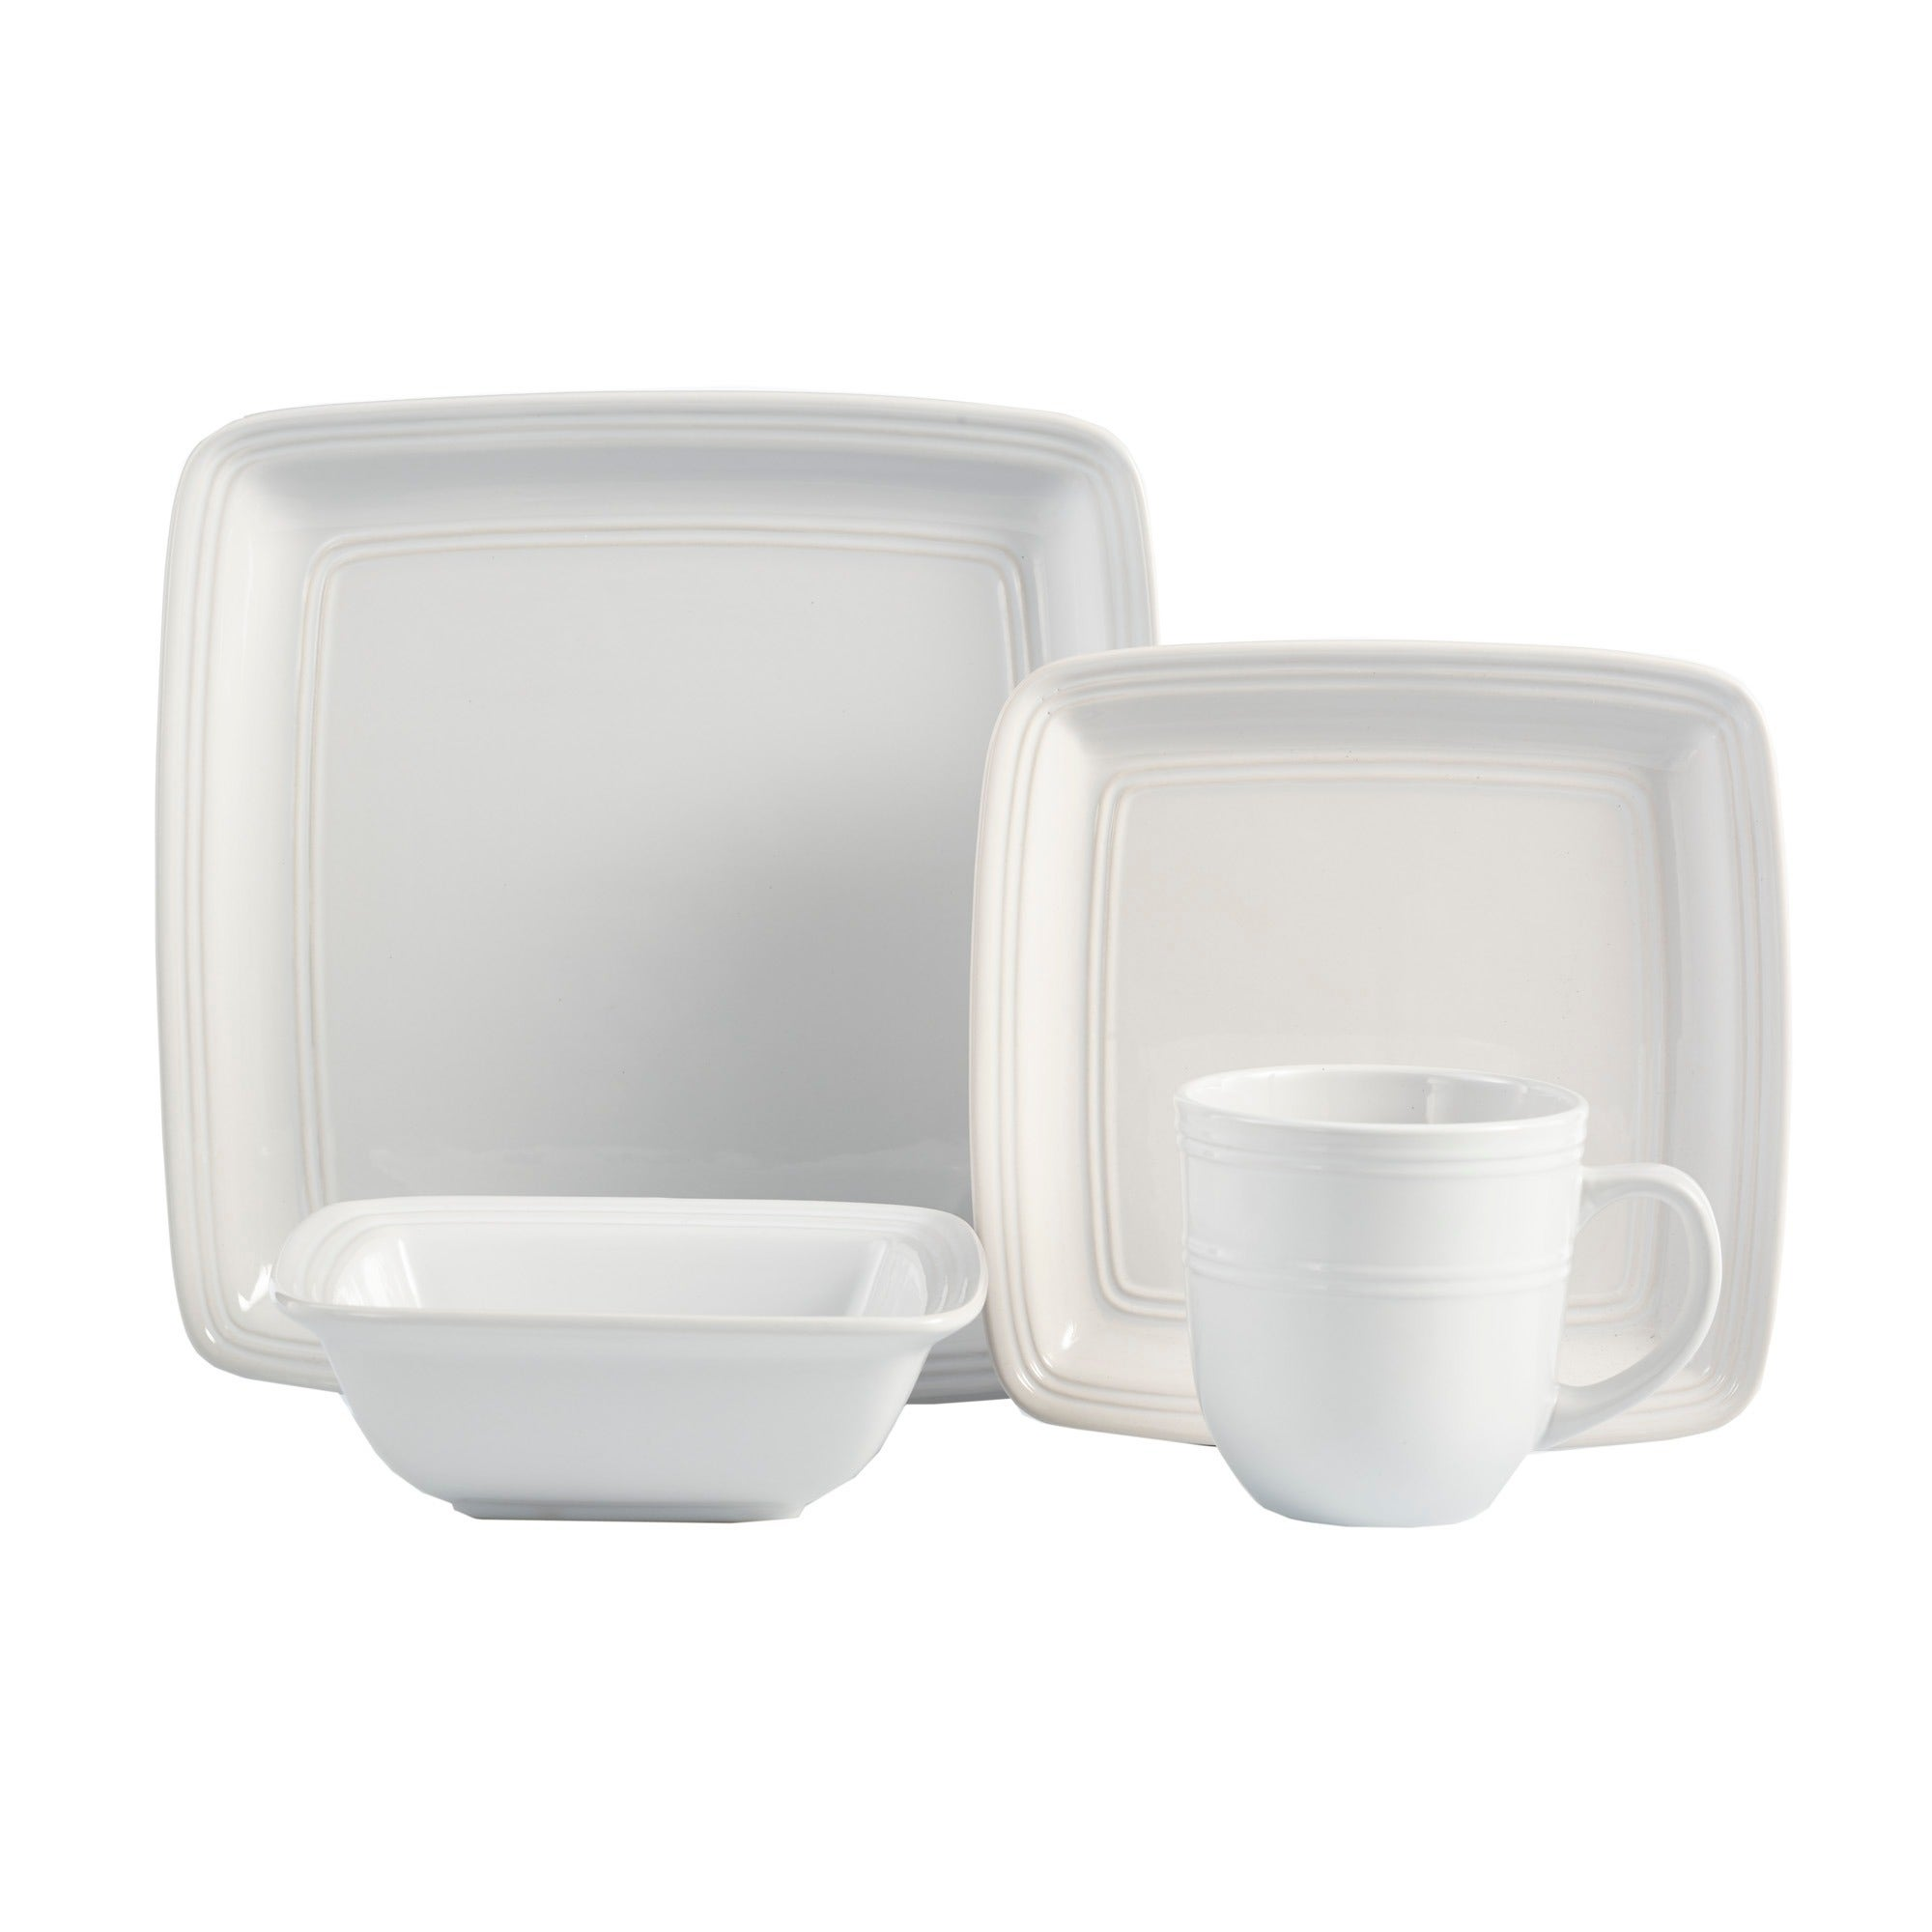 American Atelier Earthenware 16-piece Square Dinnerware Set (Service for 4) - Free Shipping Today - Overstock - 20757010  sc 1 st  Overstock.com & American Atelier Earthenware 16-piece Square Dinnerware Set (Service ...